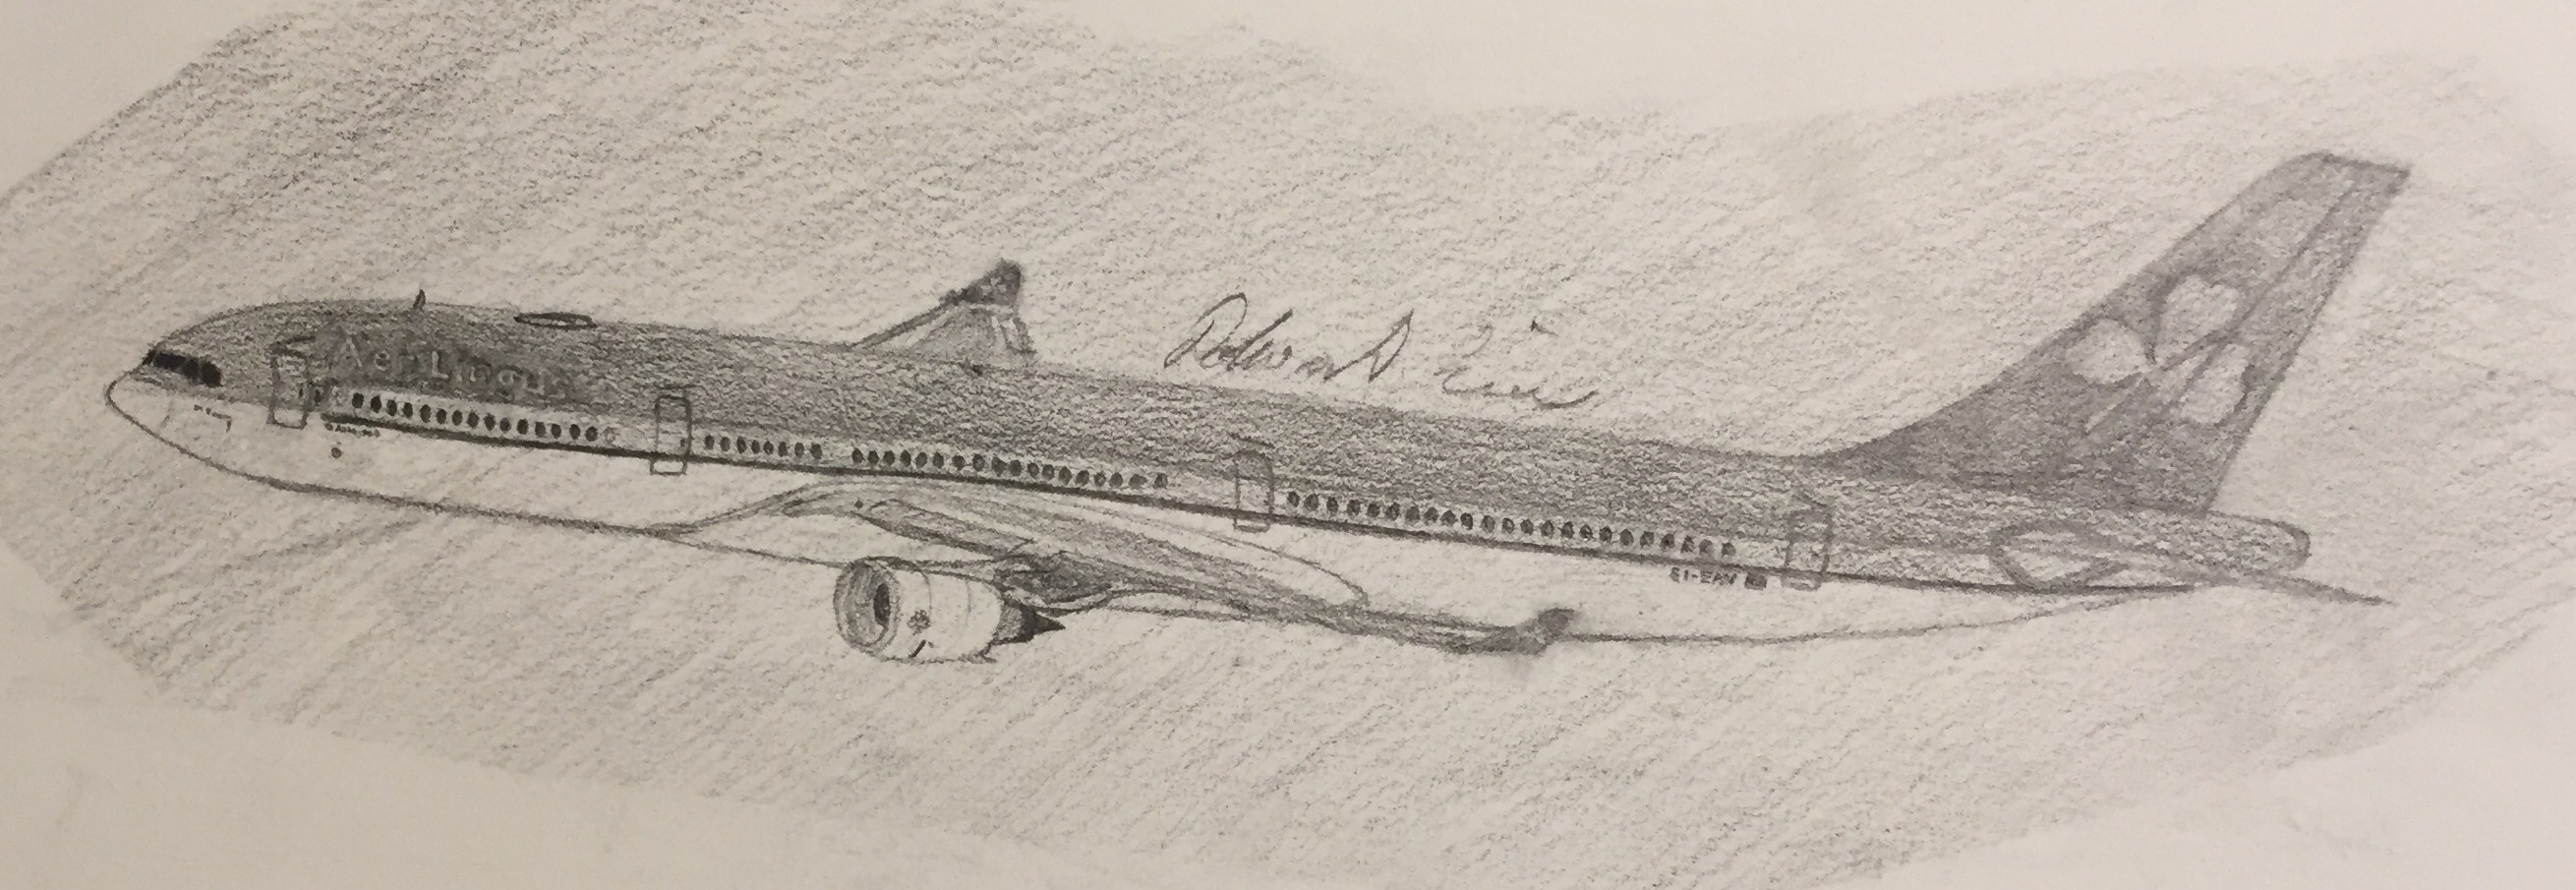 2620x905 All Pencil Of An Aer Lingus Airbus A330 303 Aircraft Drawings